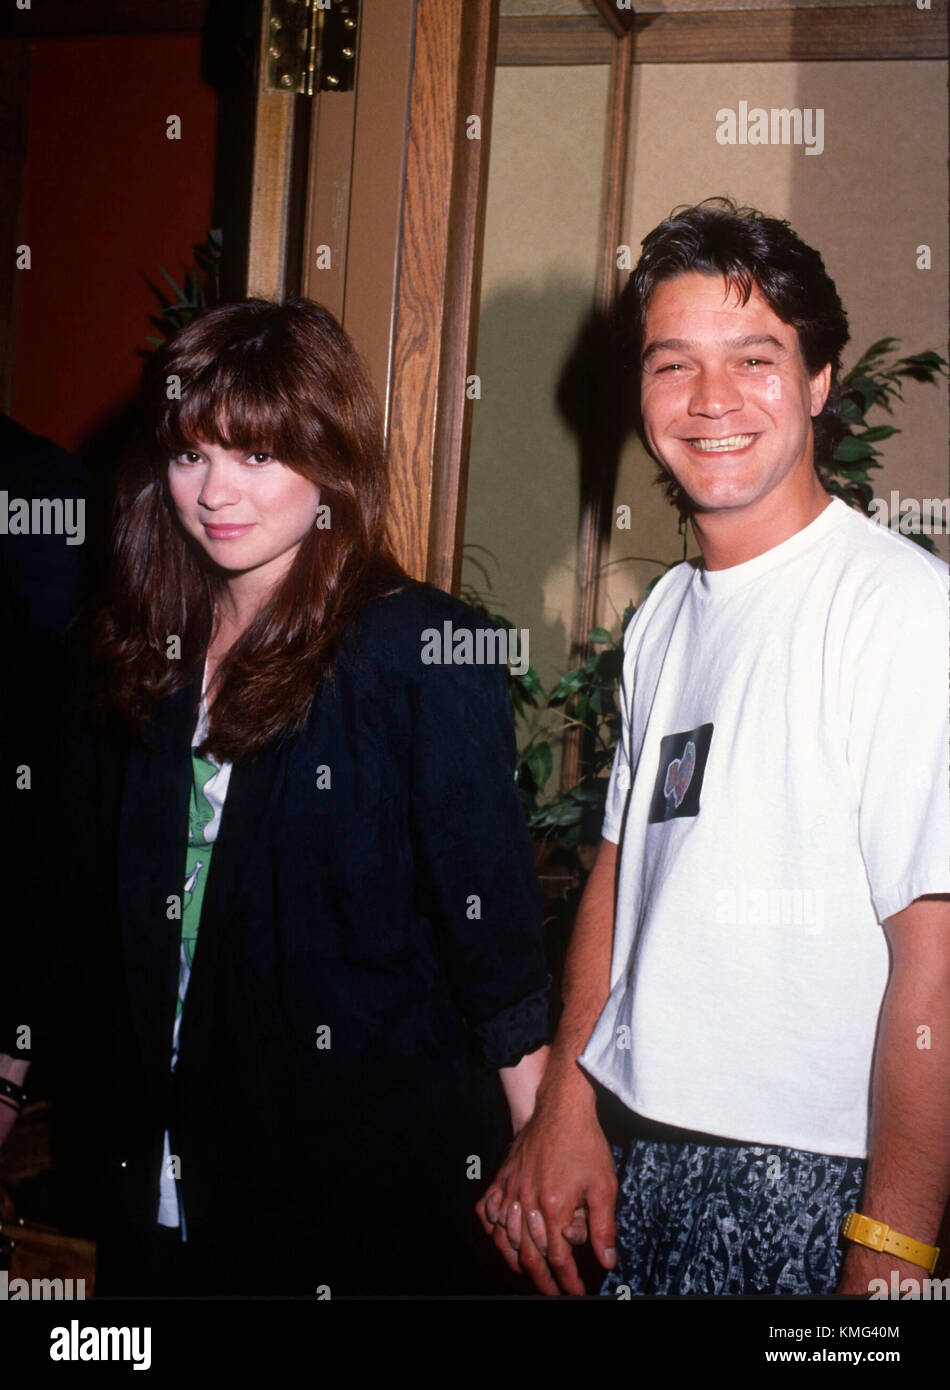 24720a69d Actress Valerie Bertinelli and musician Eddie Van Halen attend Billy Idol  concert backstage at The Forum